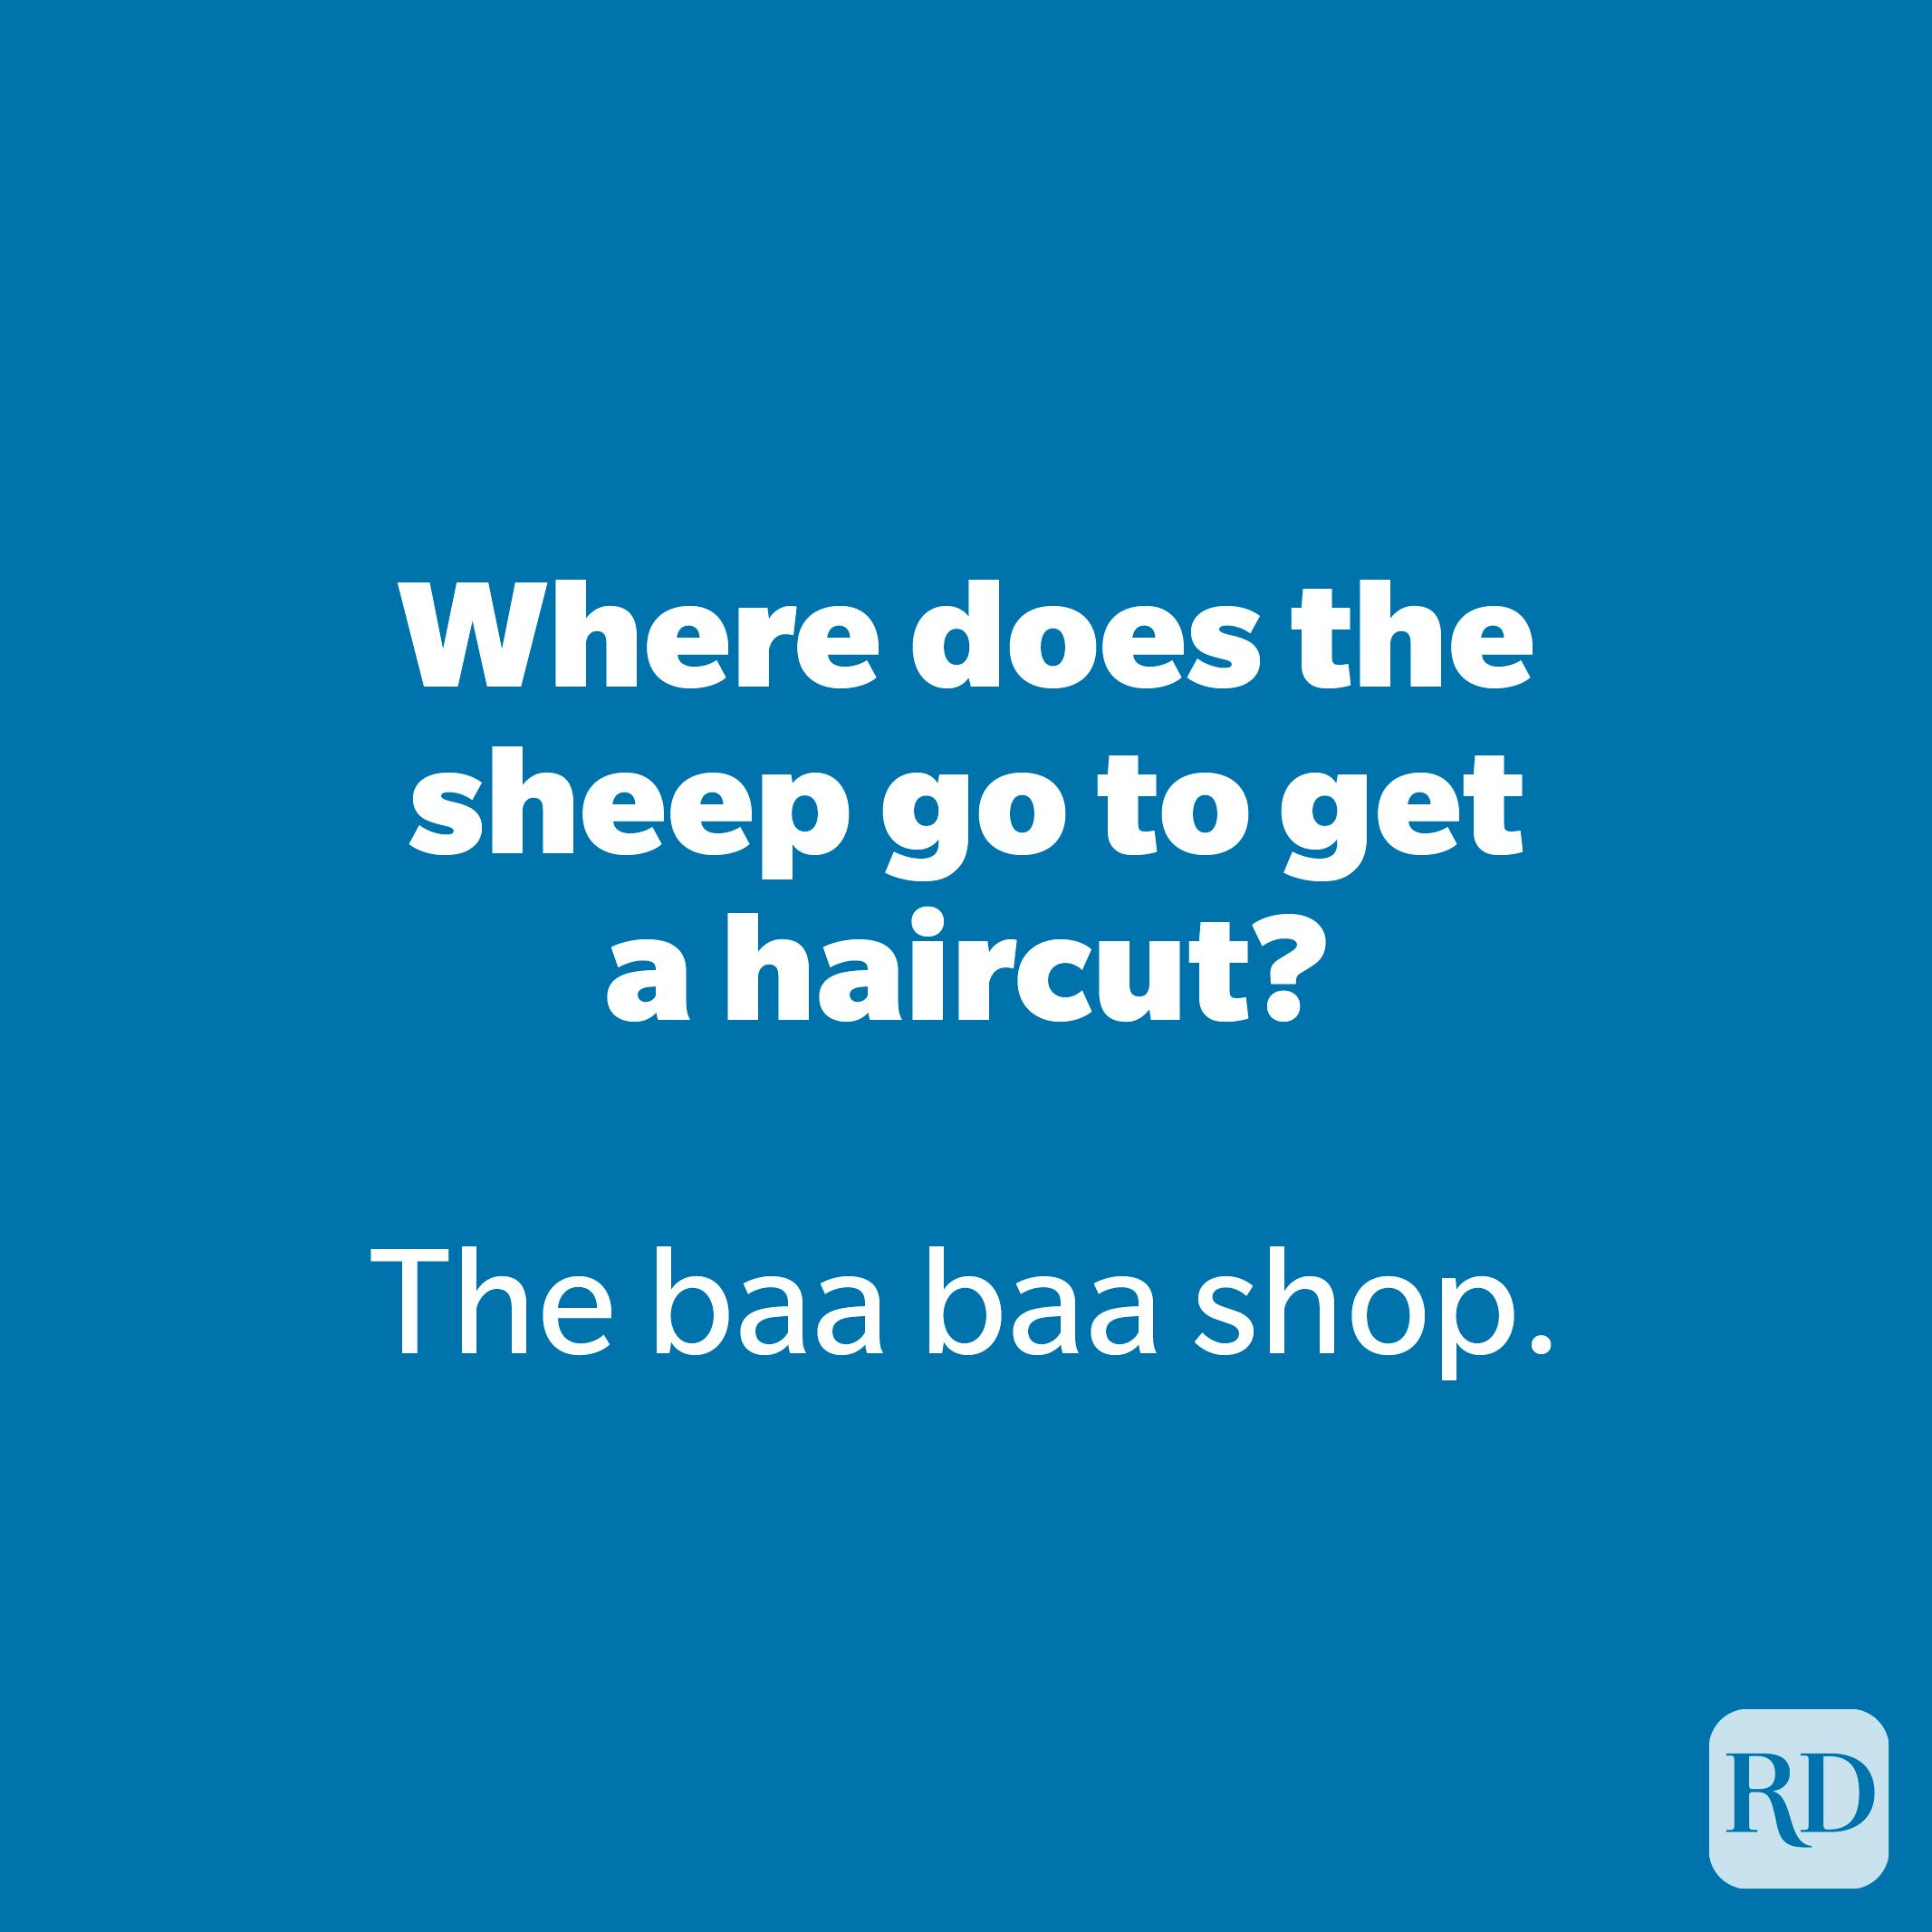 Where does the sheep go to get ahaircut?